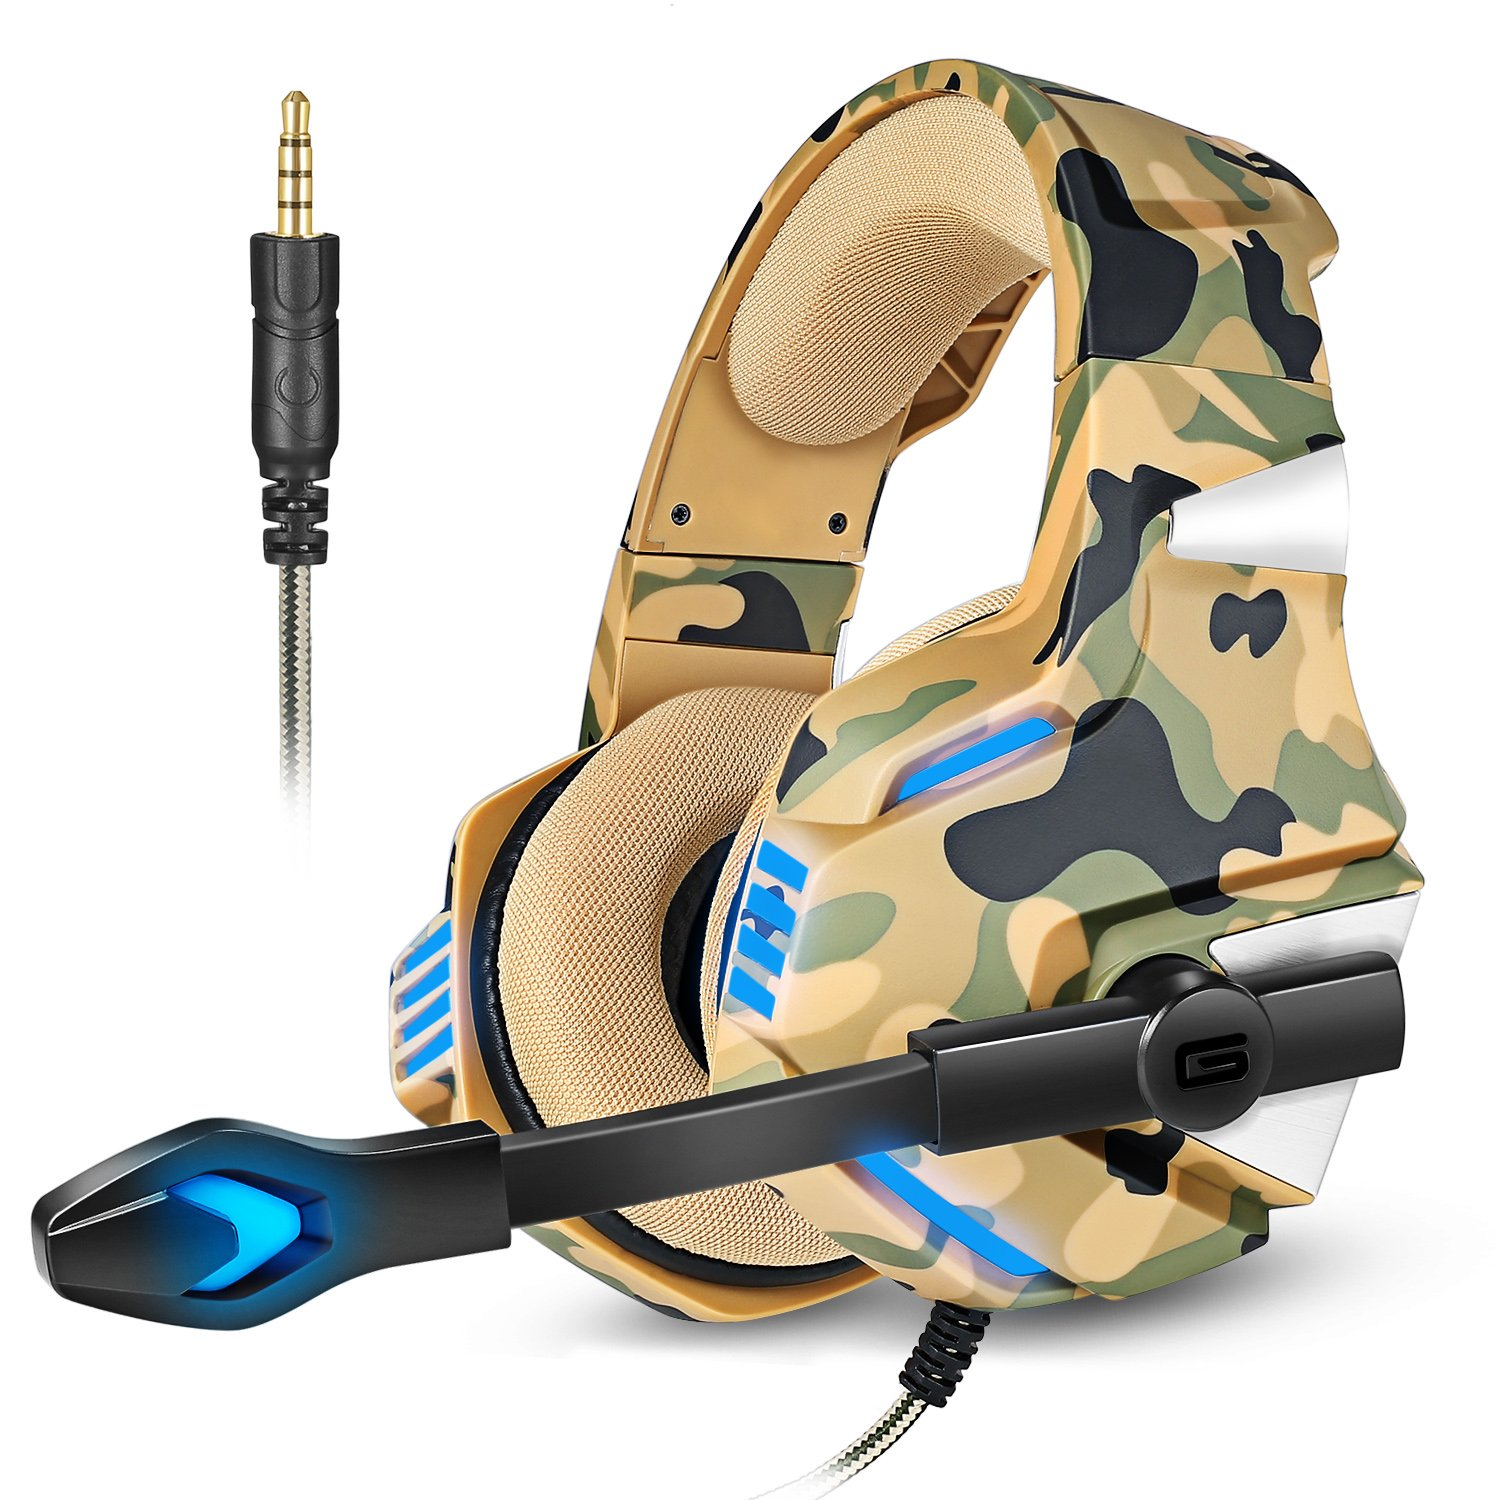 Gaming Headset For PS4 Xbox One, Micolindun Over Ear Gaming Headphones With Mic Stereo Surround Noise Reduction LED Lights Volume Control For Laptop, PC, Mac, IPad, Smartphones